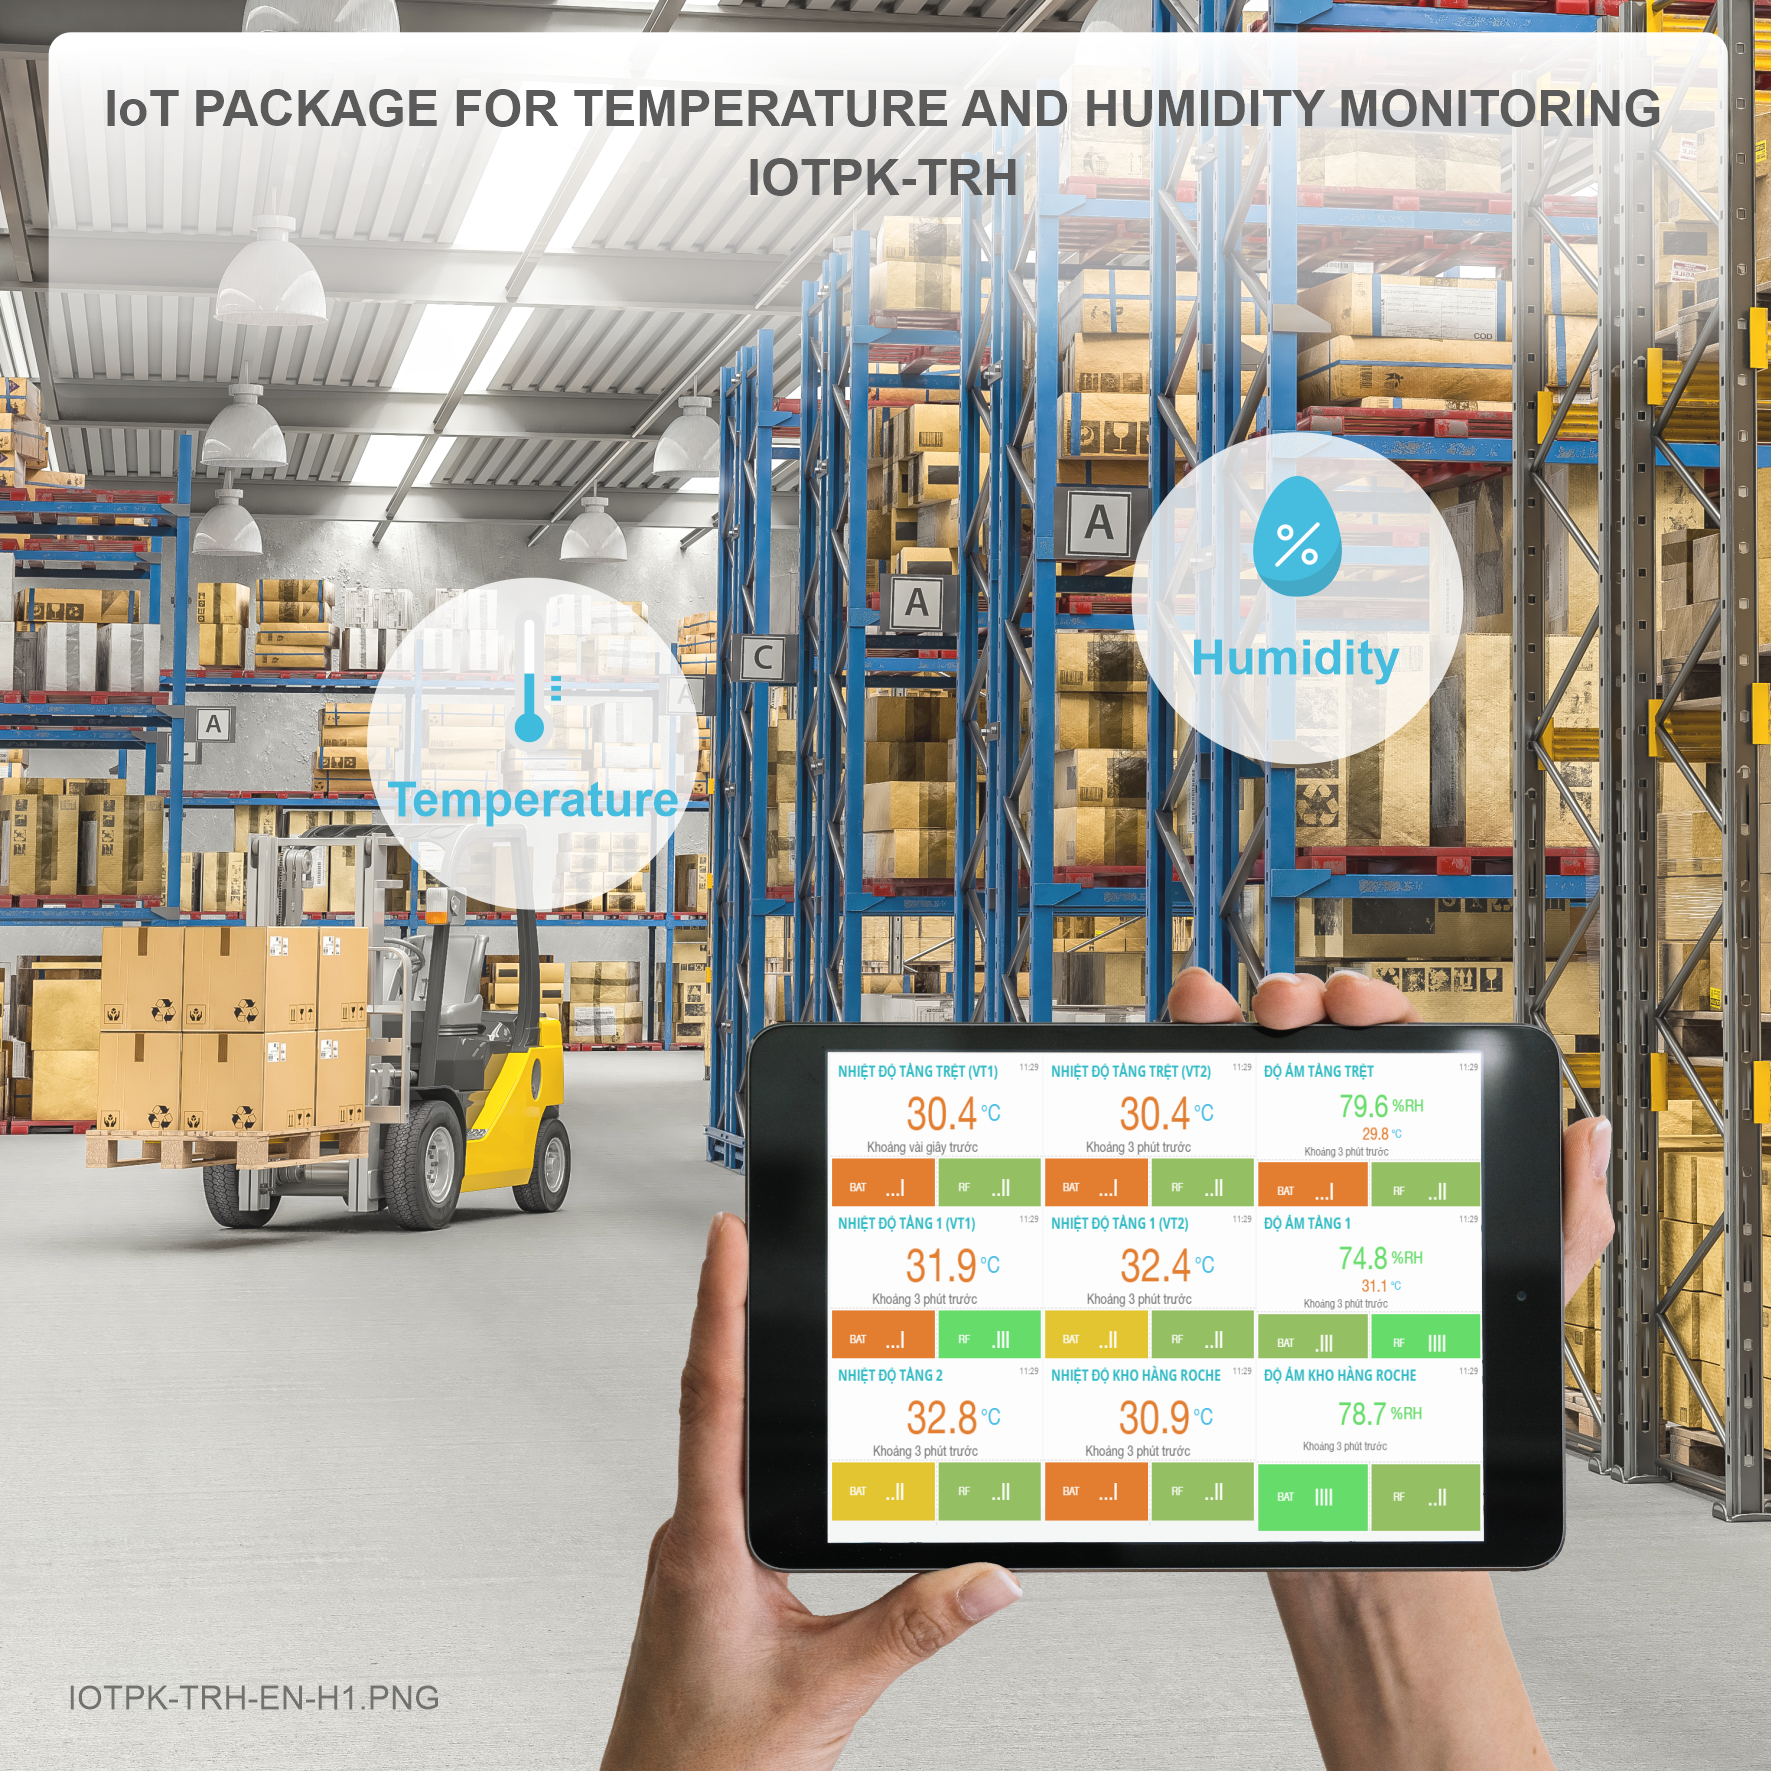 IoT PACKAGE FOR TEMPERATURE AND HUMIDITY